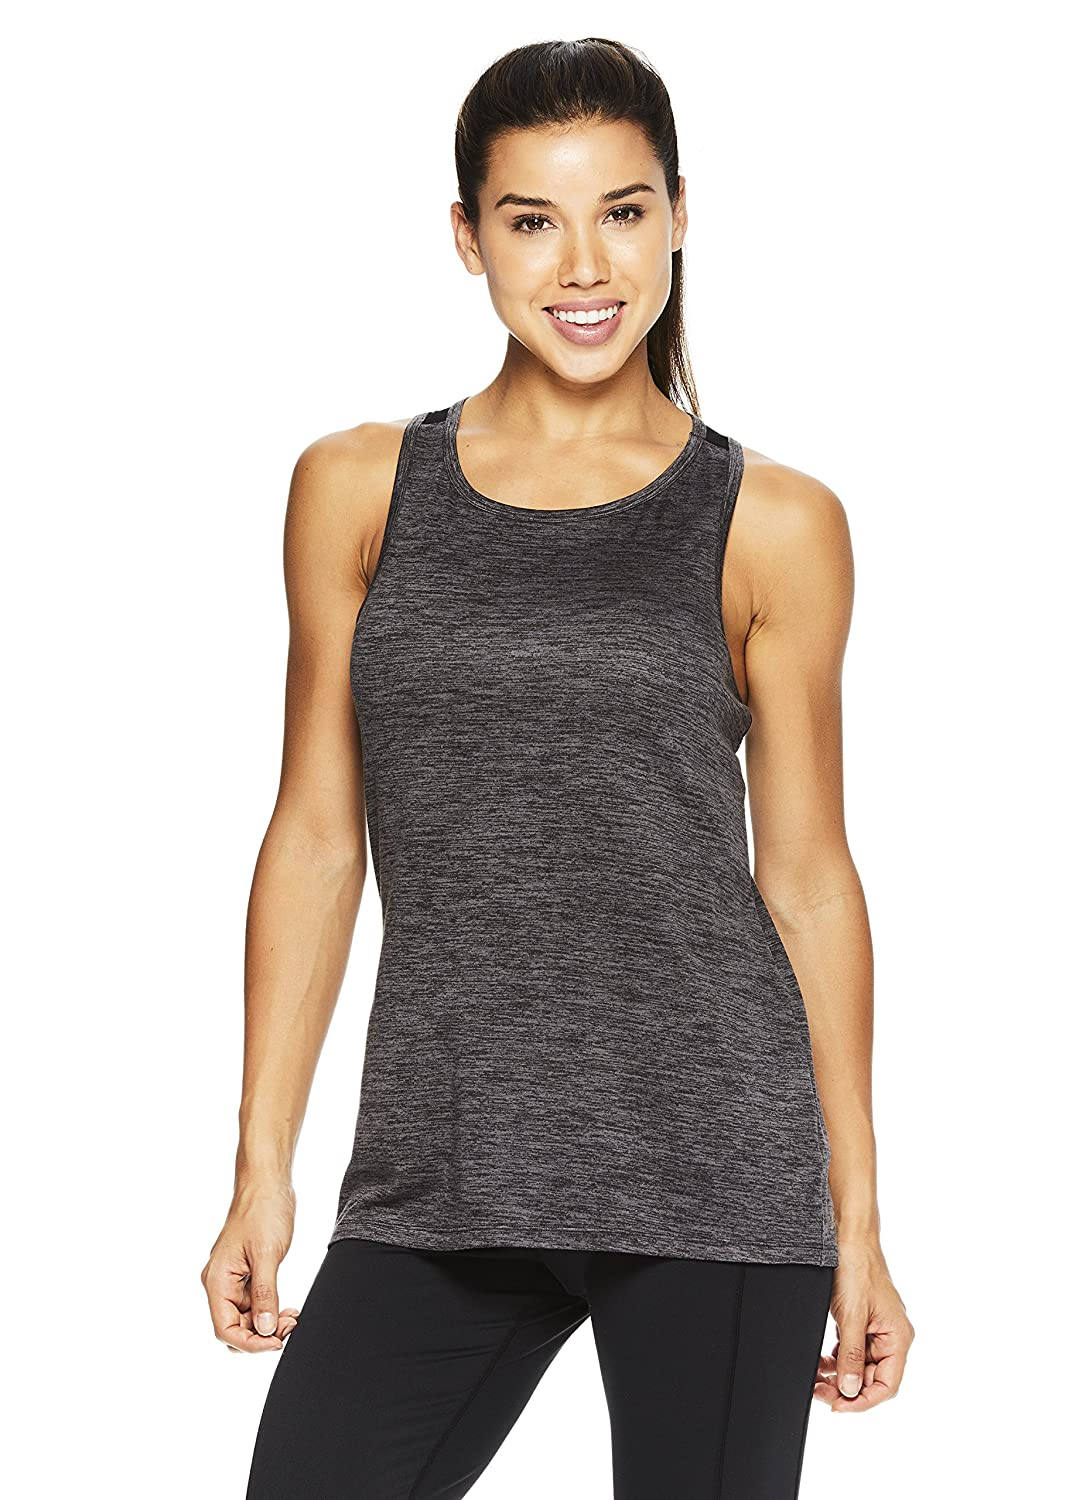 b2b8a1acd56d6e ACTIVE OR NOT: Whether you're working out or hanging out, this trendy  workout tank top will keep you ready for anything. Perfect for any low  impact physical ...